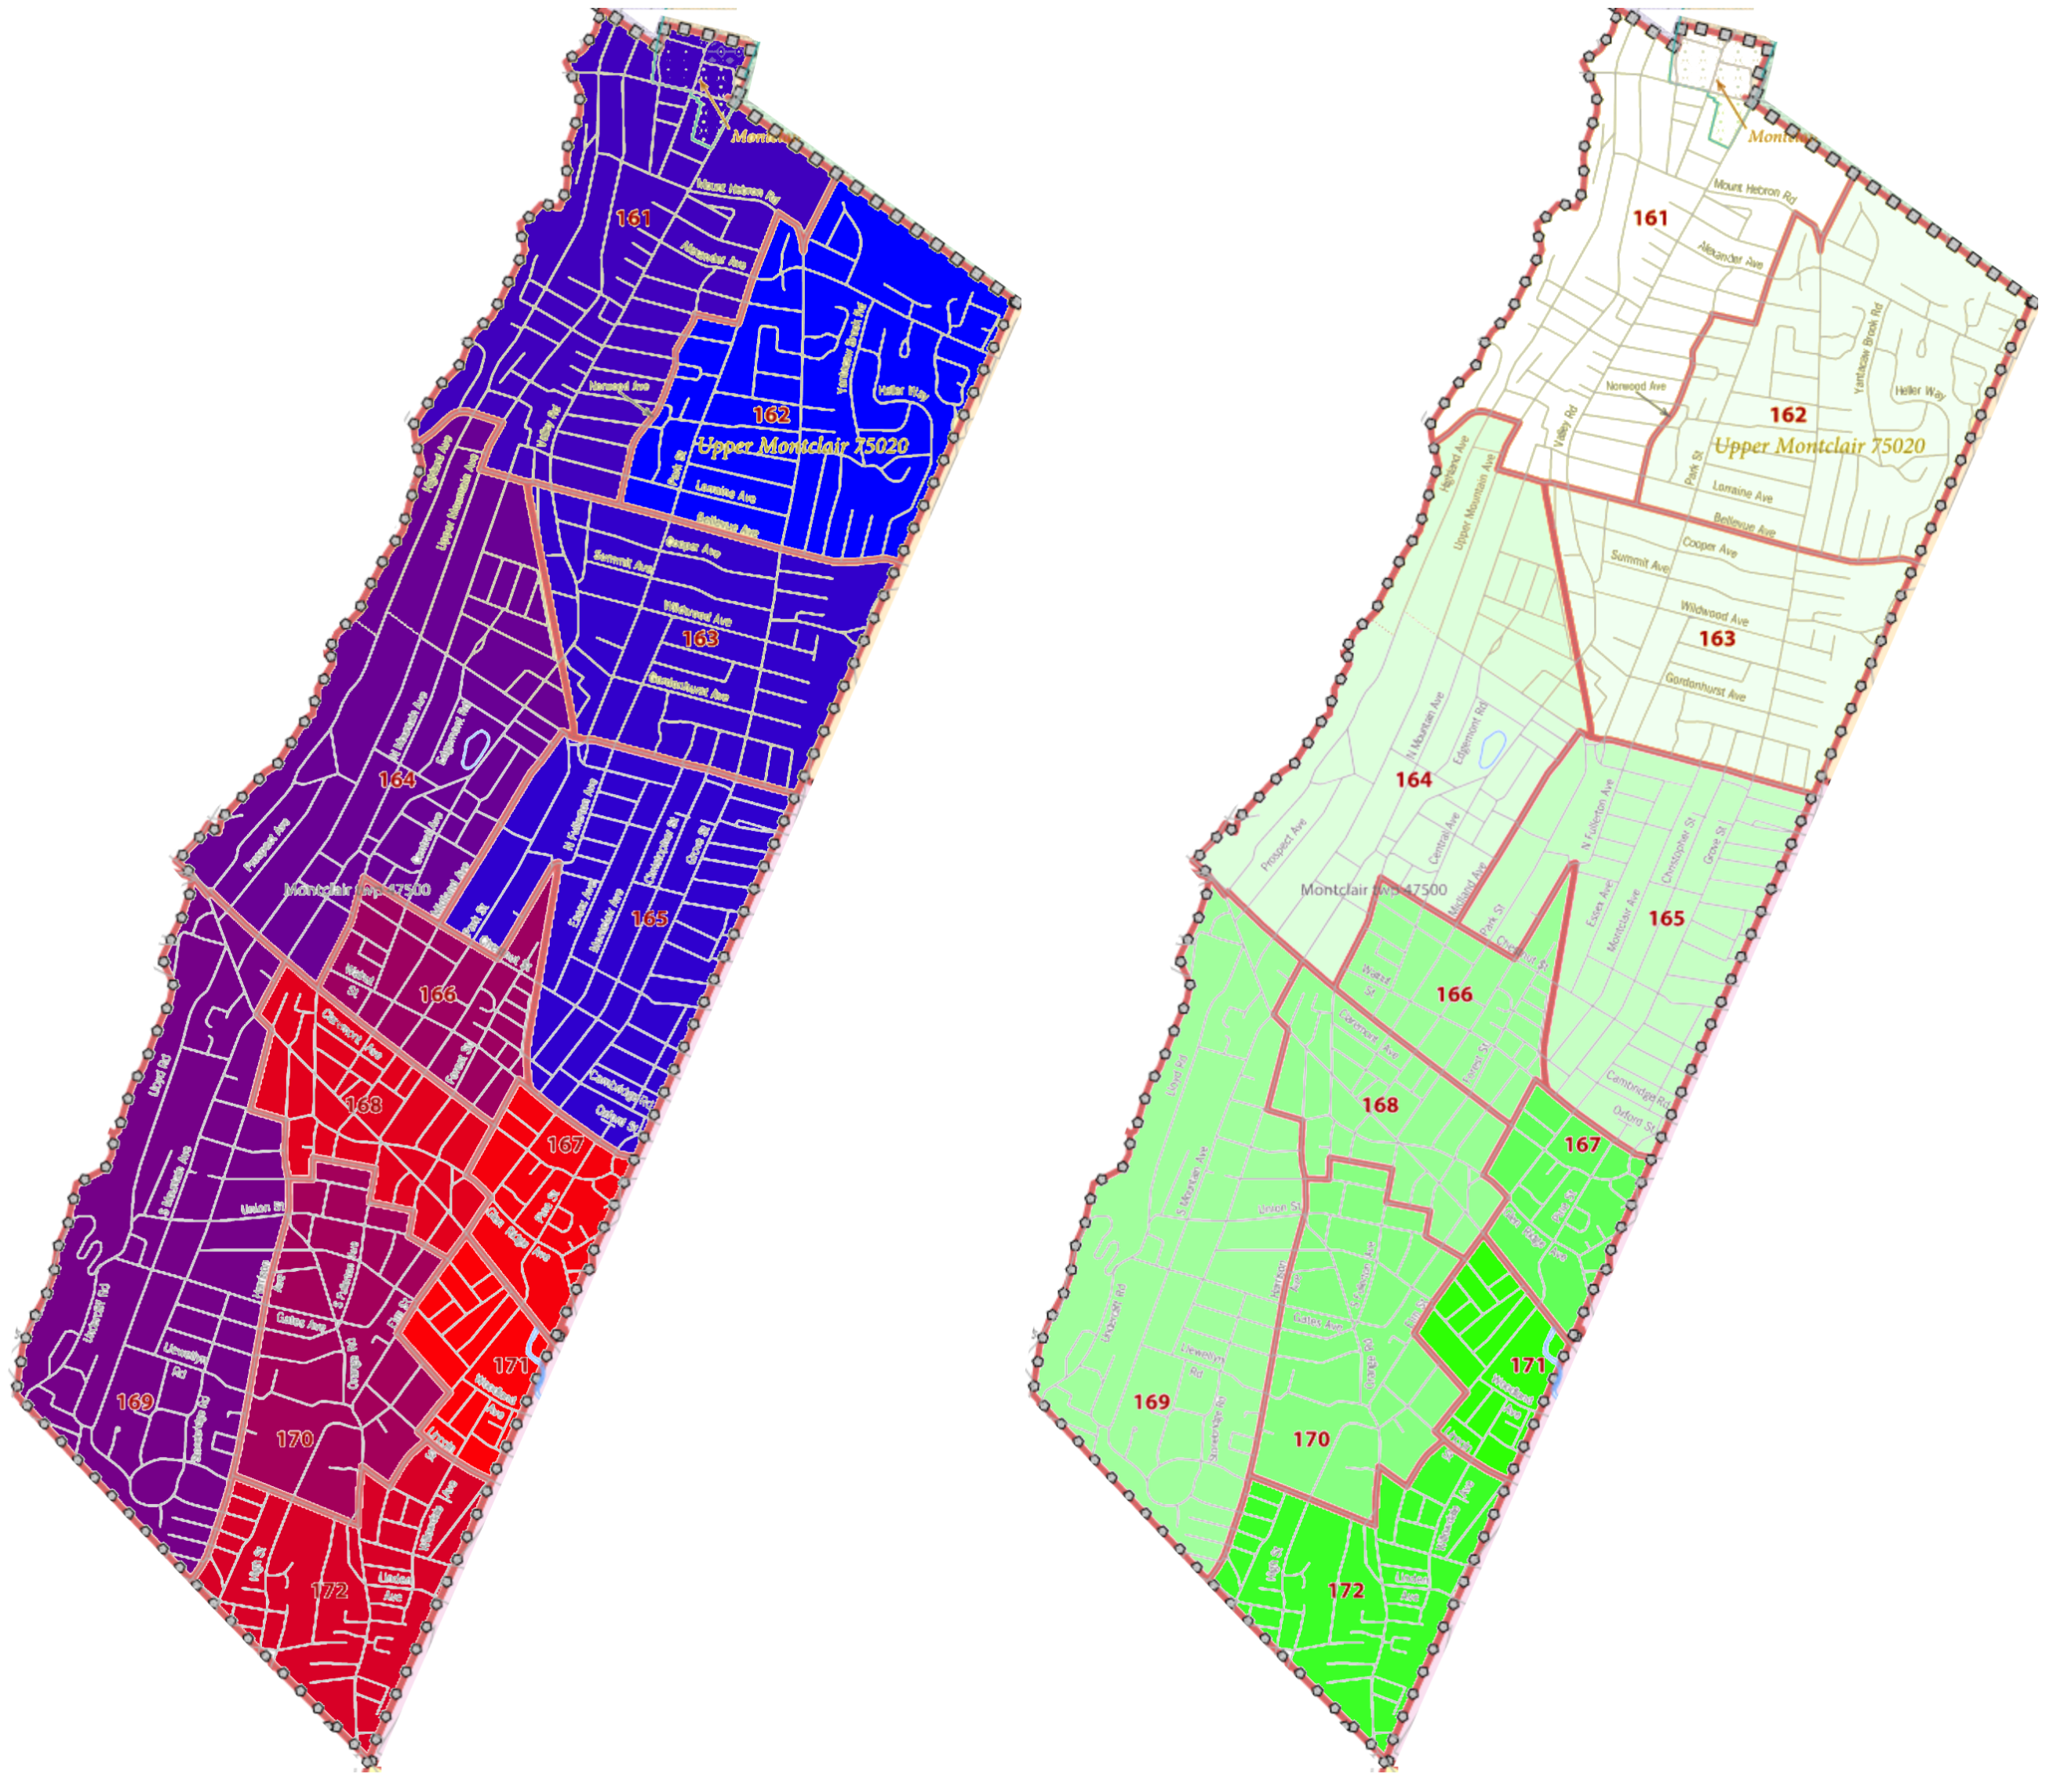 Montclair's lowest-income neighborhoods (red areas in left map) coincide with areas of greatest racial minority concentration (green areas in right map). This proposal targets people in the 4th Ward and parts of the 3rd Ward (red areas) – as well as similar parts of neighboring towns. US Census tracts 2020 data.